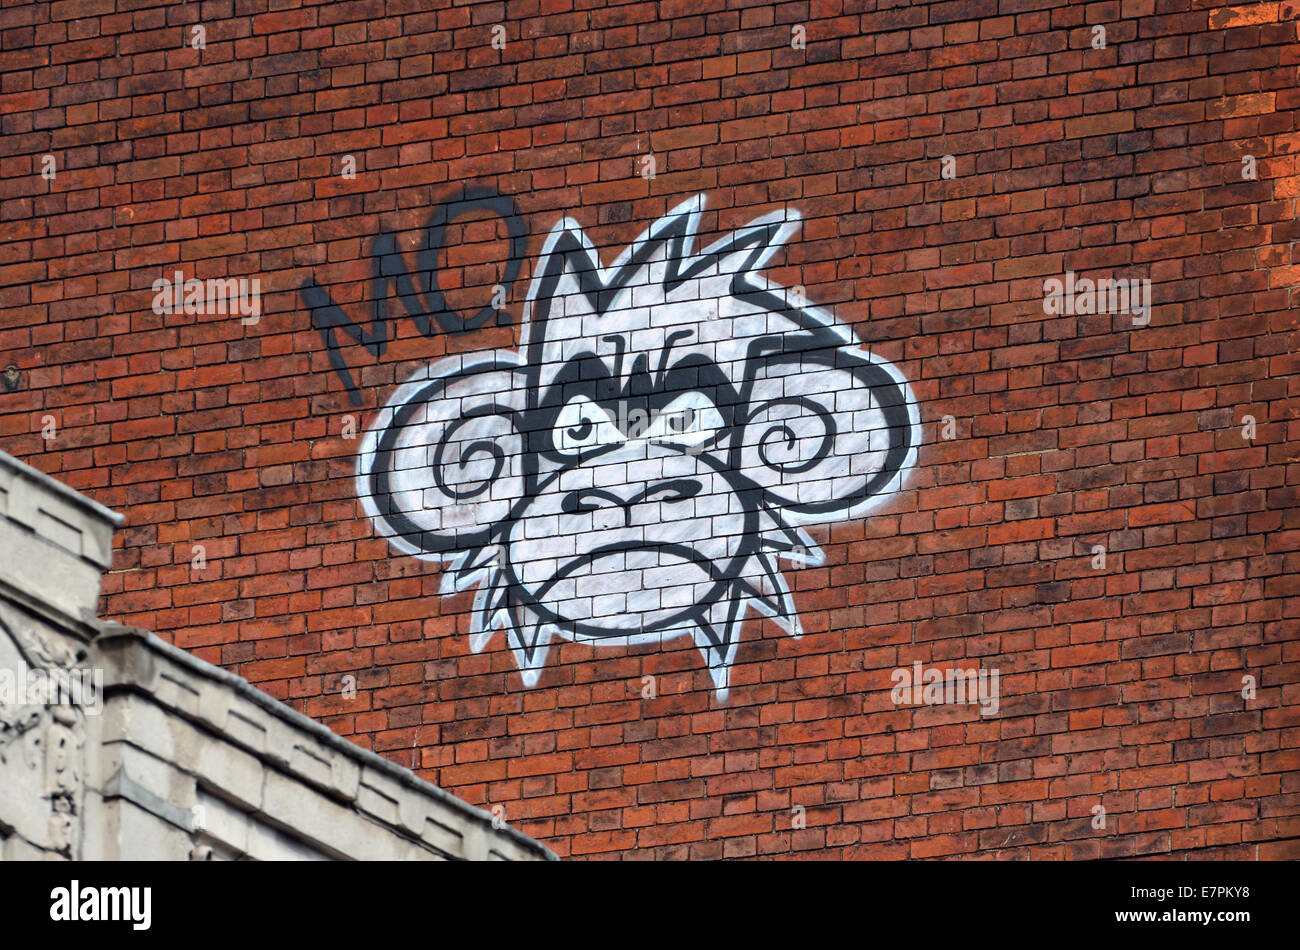 London, England, UK. 'Mighty Monkey' graffiti on Oxford Street by street artist Mighty Mo - Stock Image